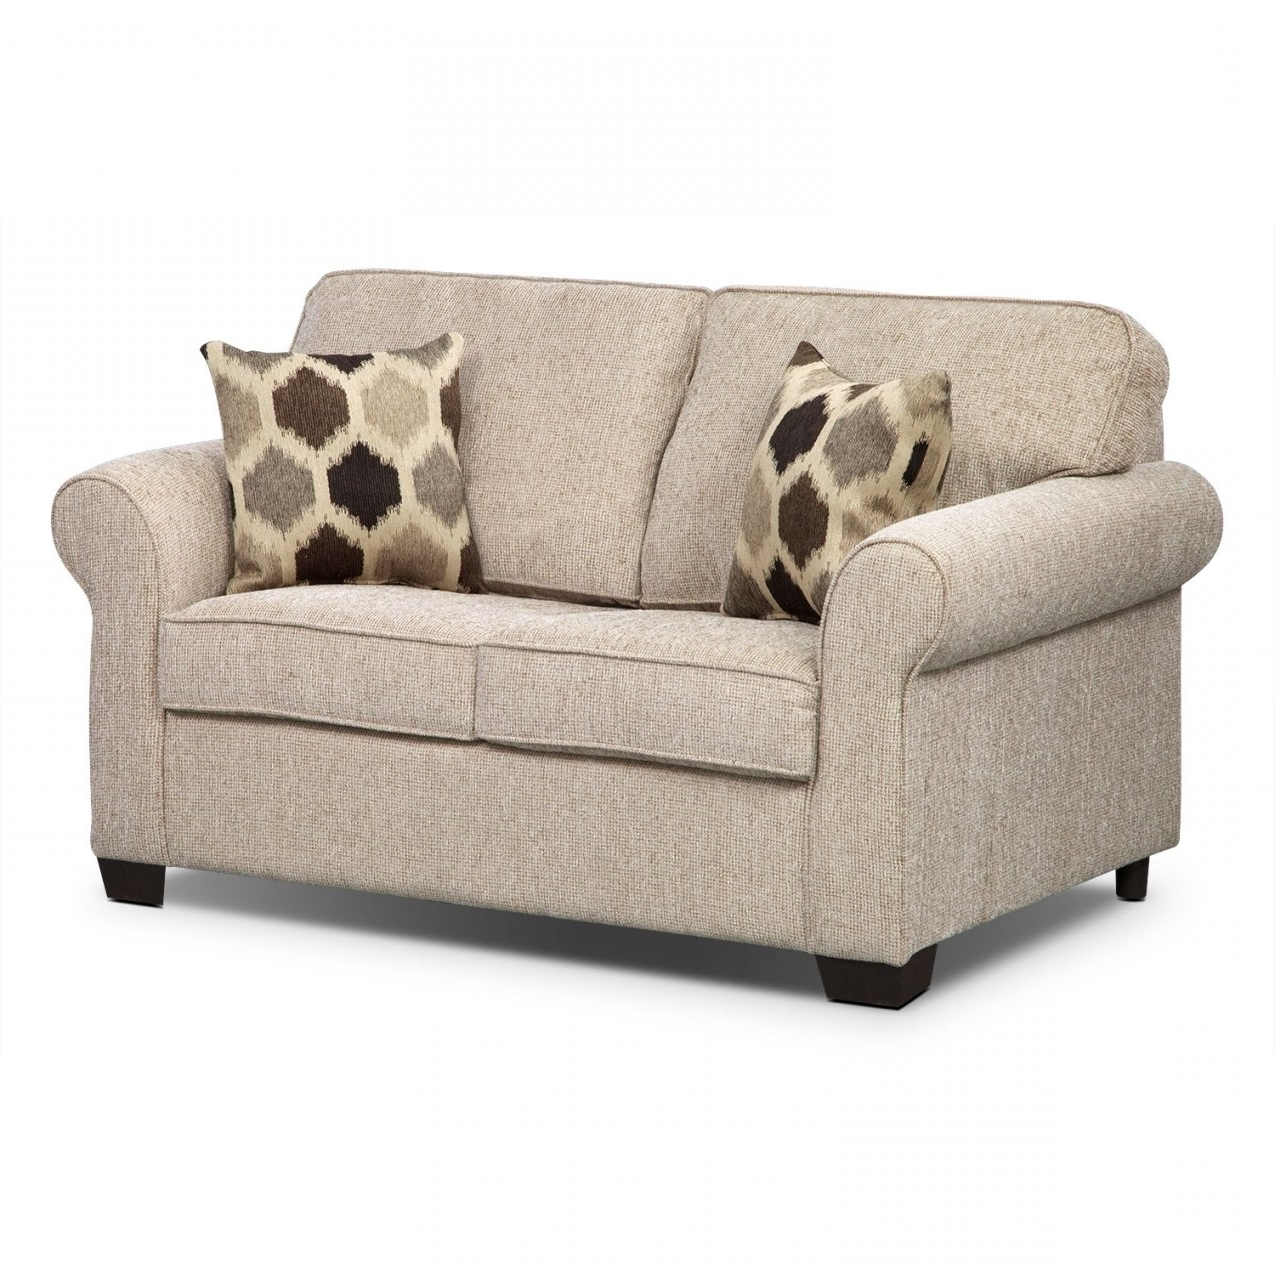 Furniture 45+ Singular Twin Sleeper Chair Photos Ideas Size With With Trendy Twin Sleeper Sofa Chairs (View 3 of 15)